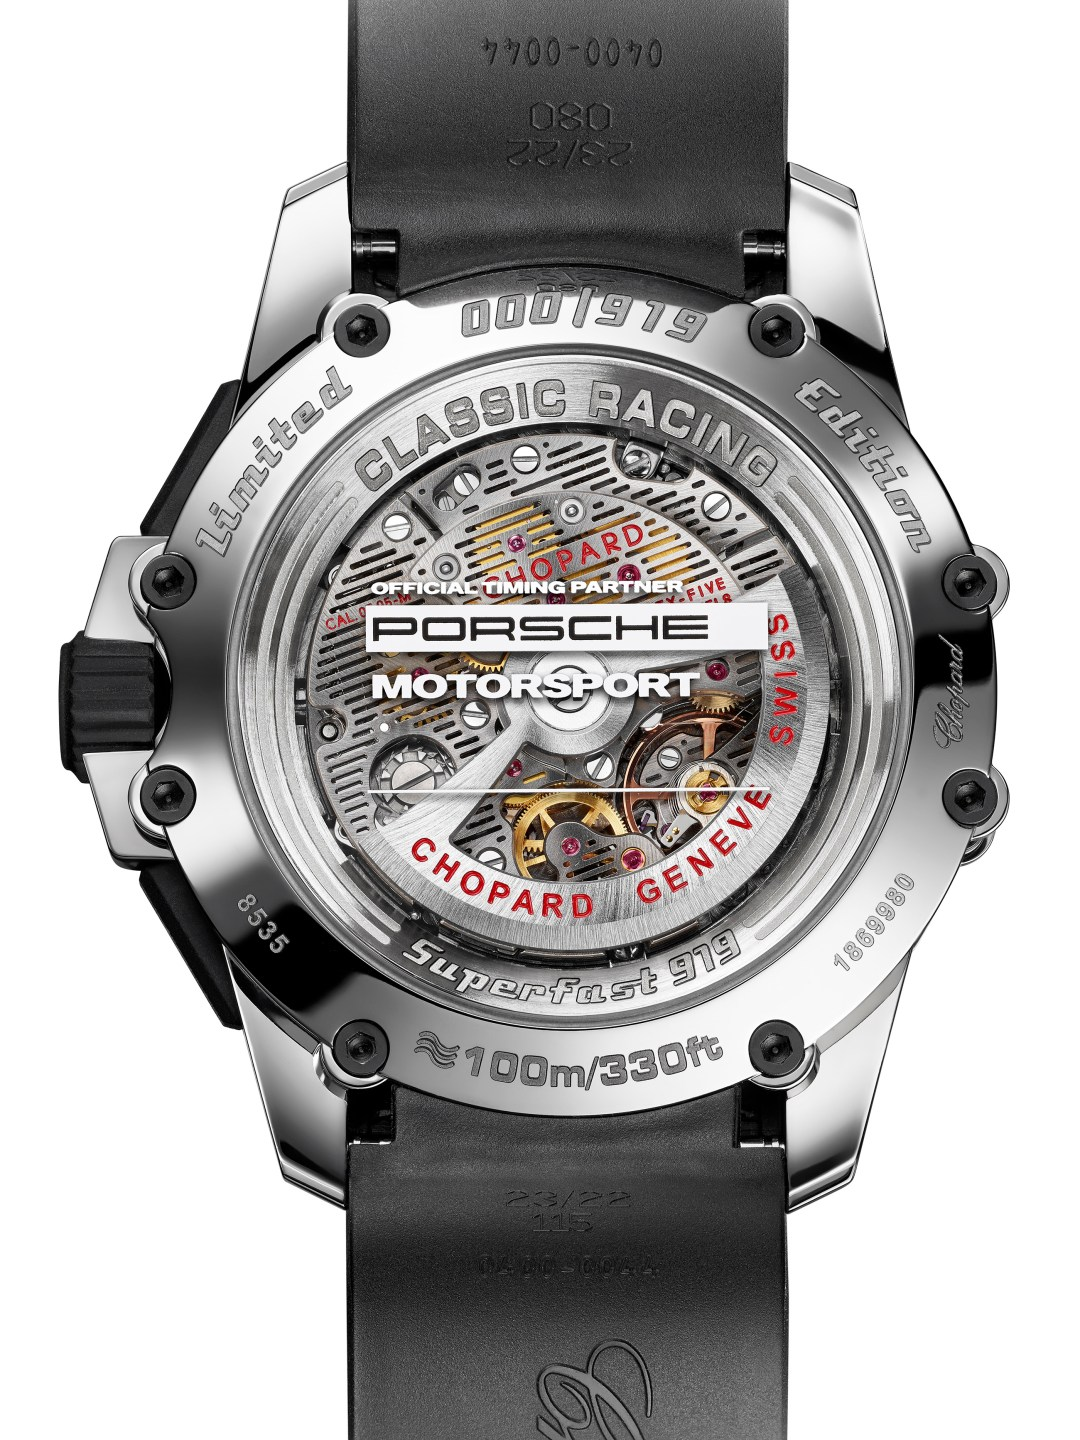 Superfast Chrono Porsche 919 Edition - Back - White Background copy